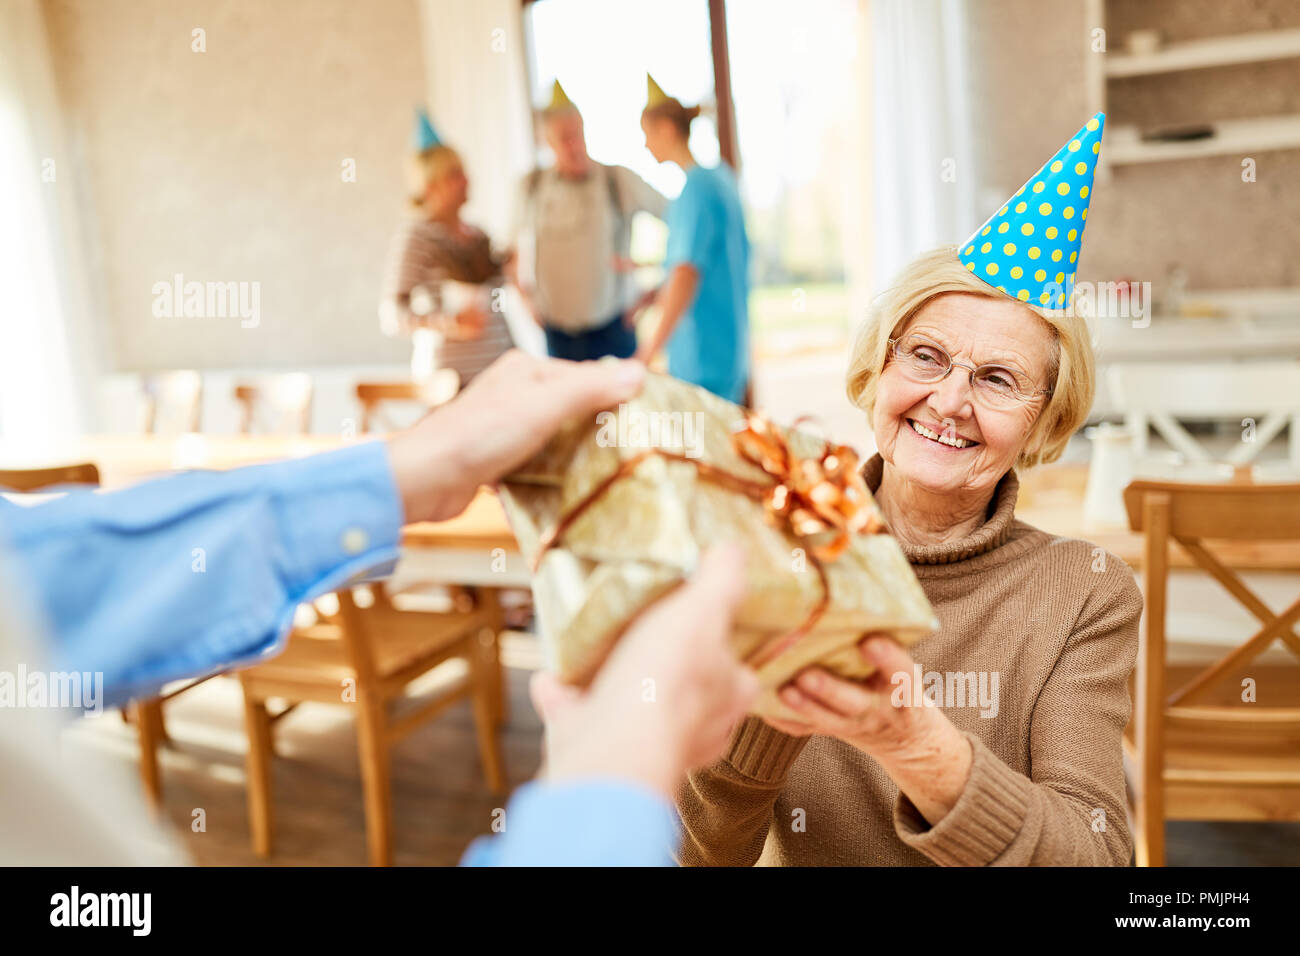 A senior as a birthday child is happy about a present at her birthday party - Stock Image